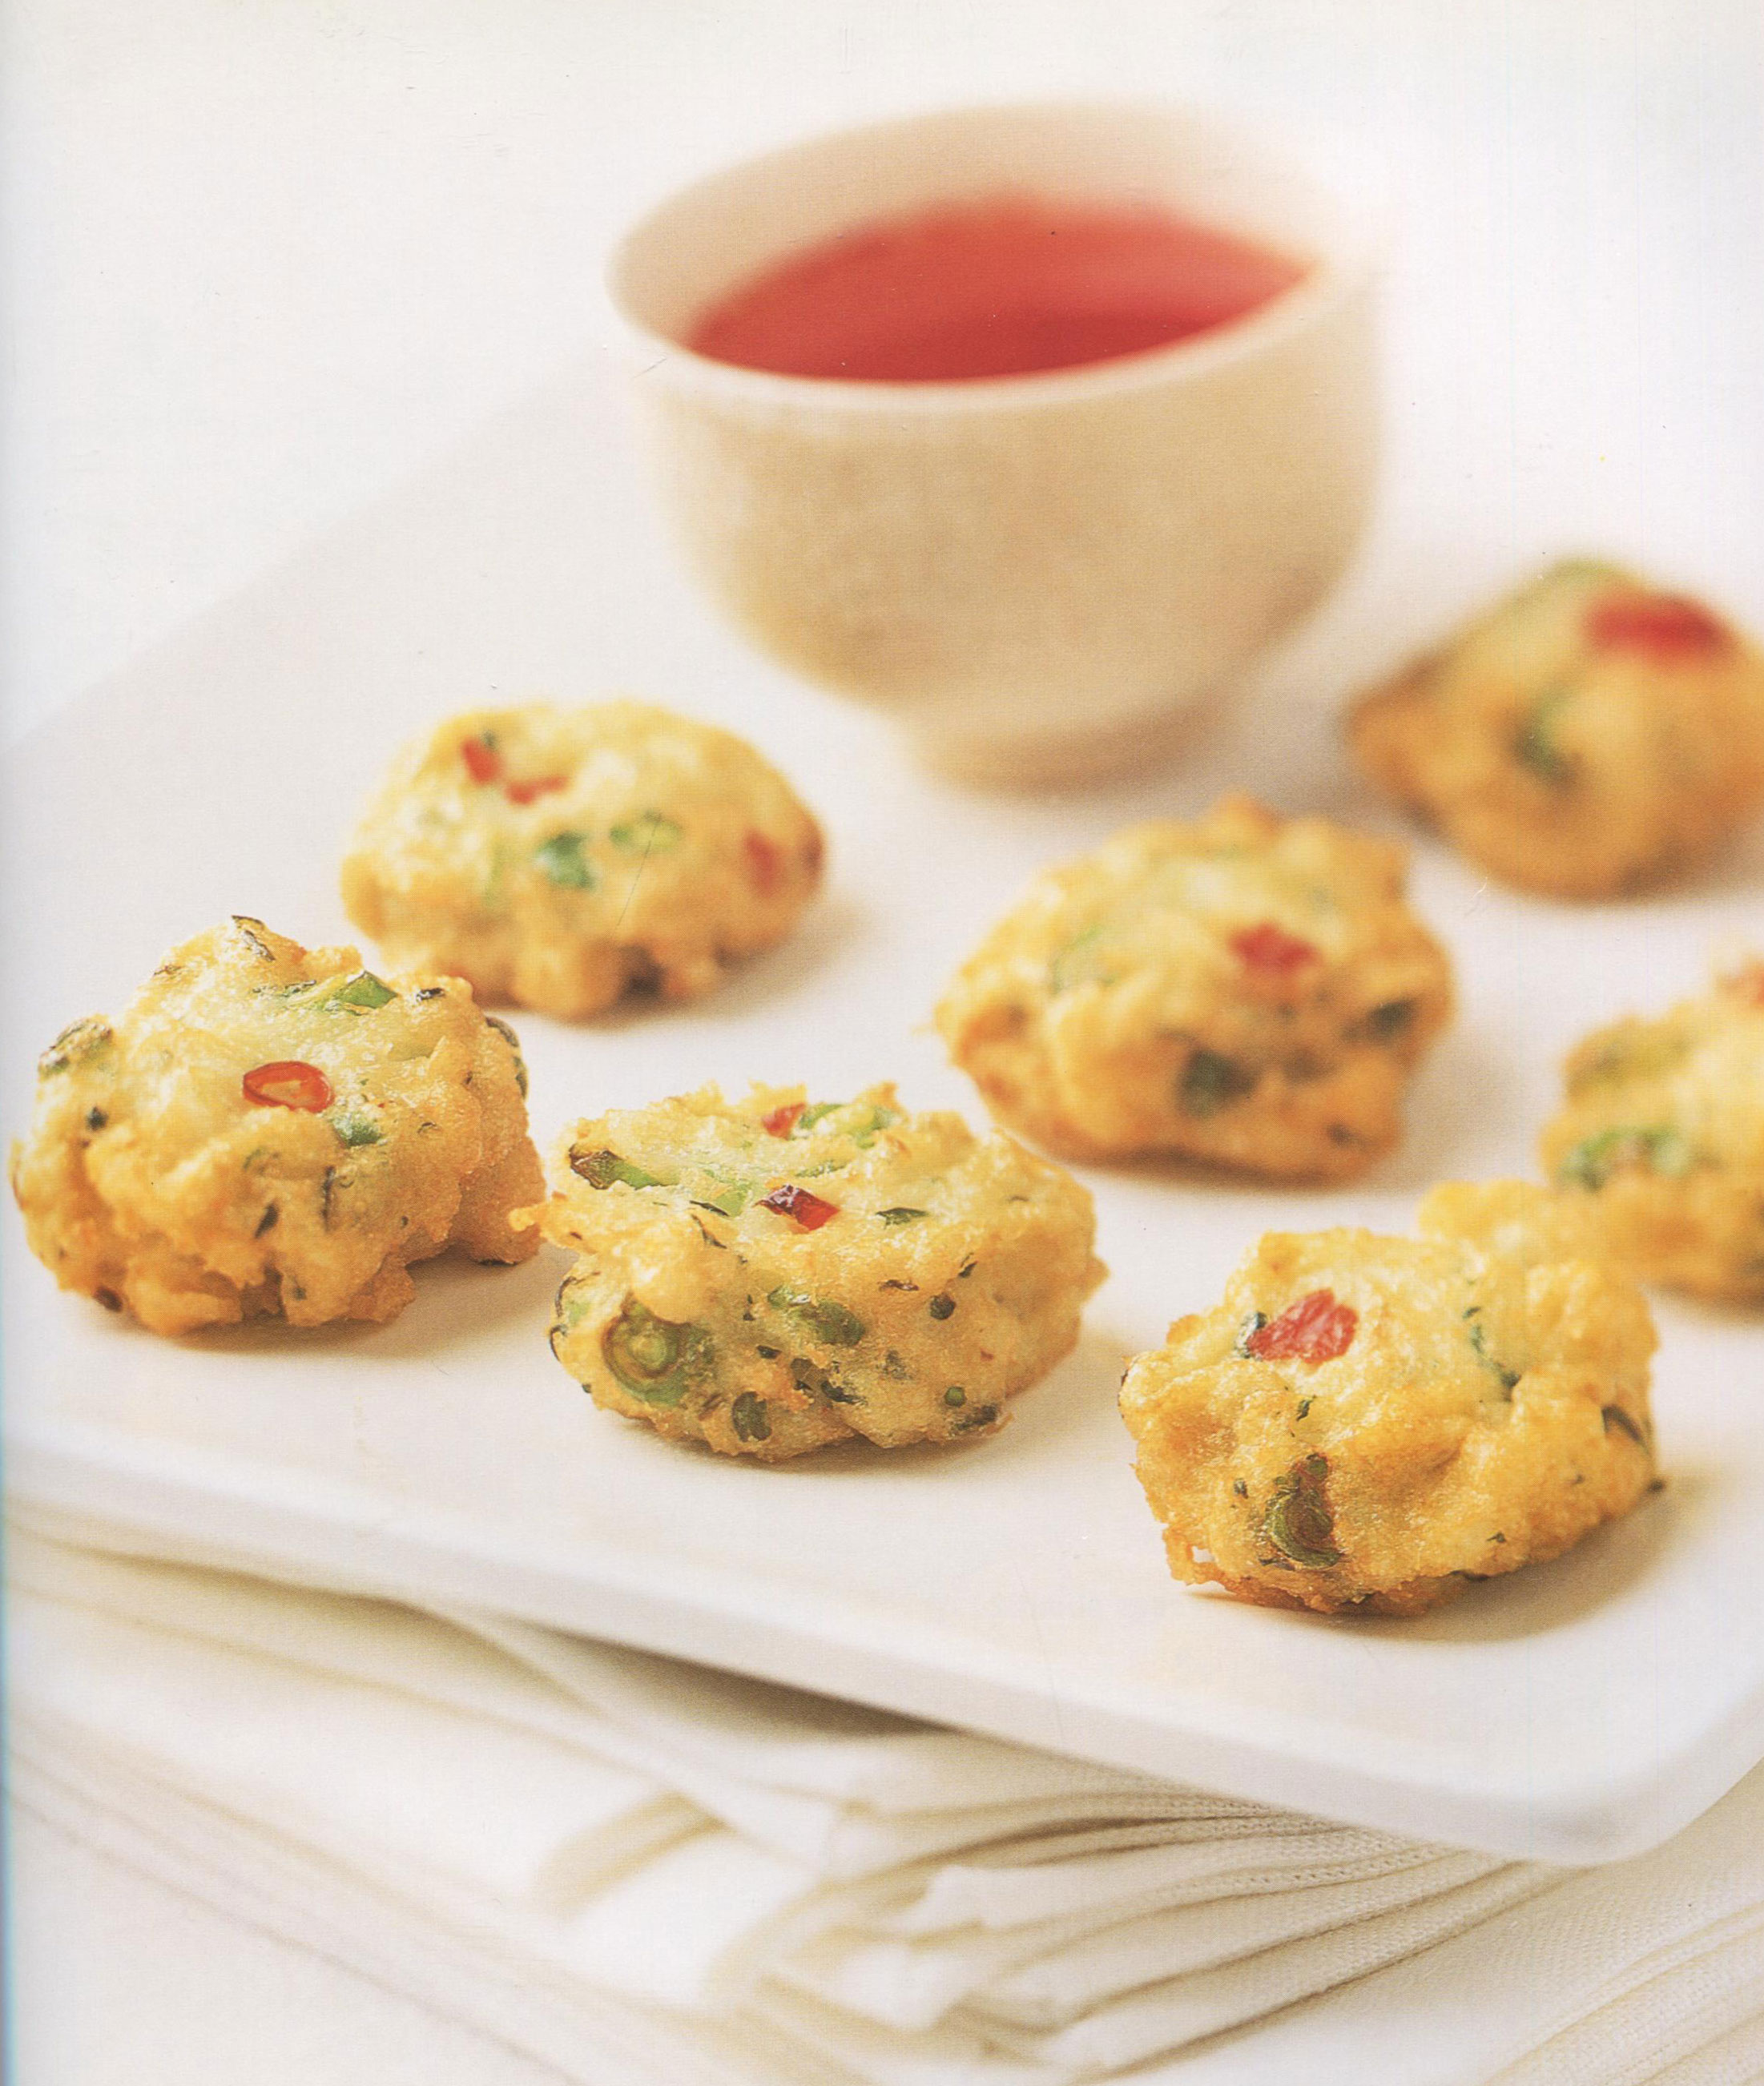 Thai Crabcakes with Chili Dipping Sauce from Fingerfood